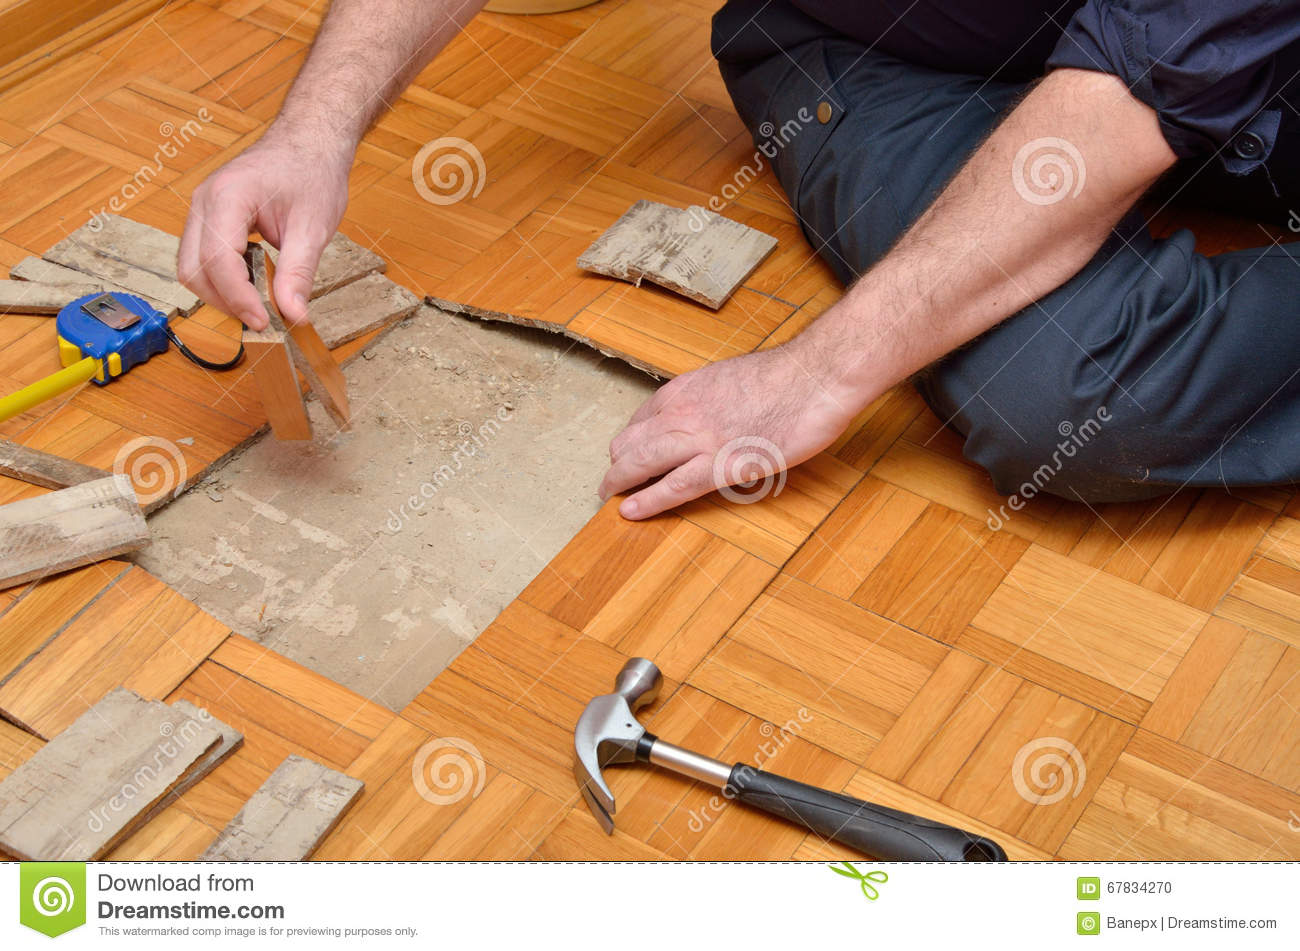 Fixing Parquet in the Apartment